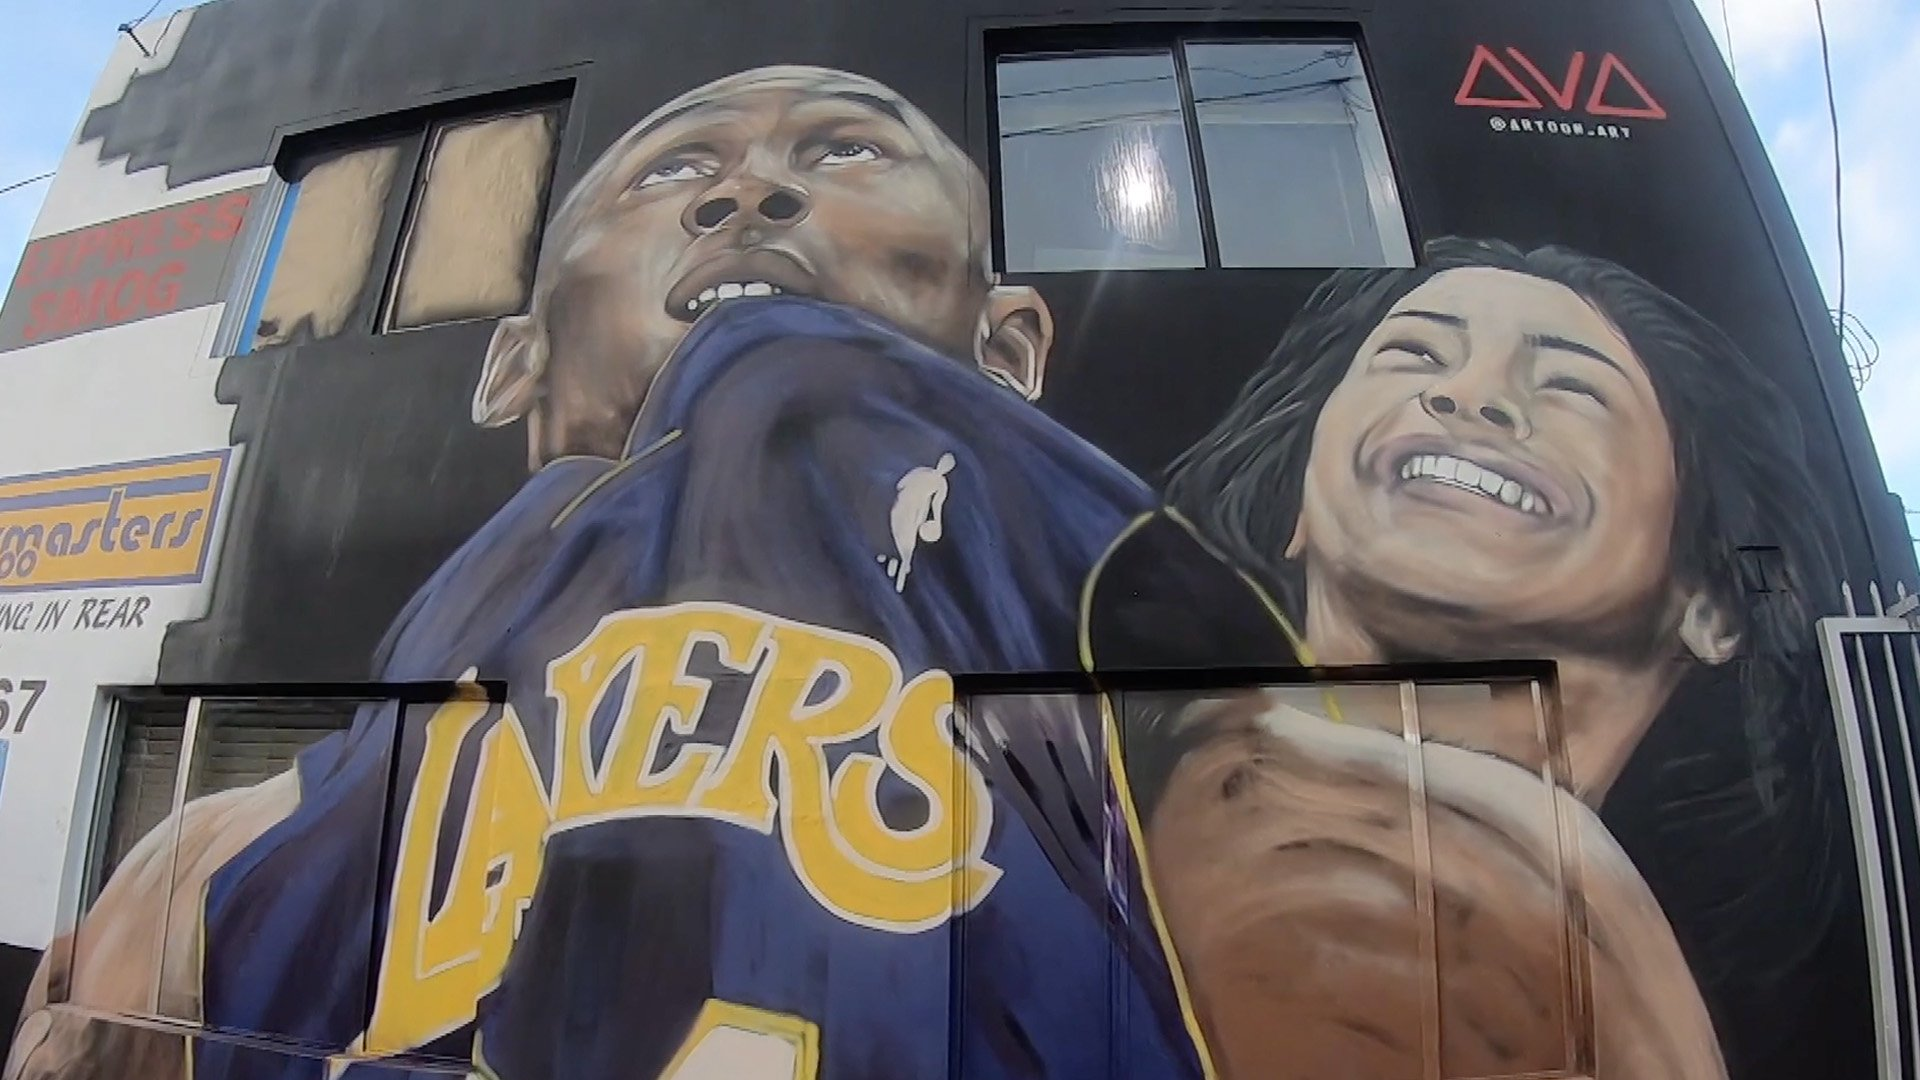 Artist Art Gozukuchikyan painted a mural of Kobe Bryant and his daughter Gianna on Jan. 26, 2020 in Studio City. (Credit: KTLA)